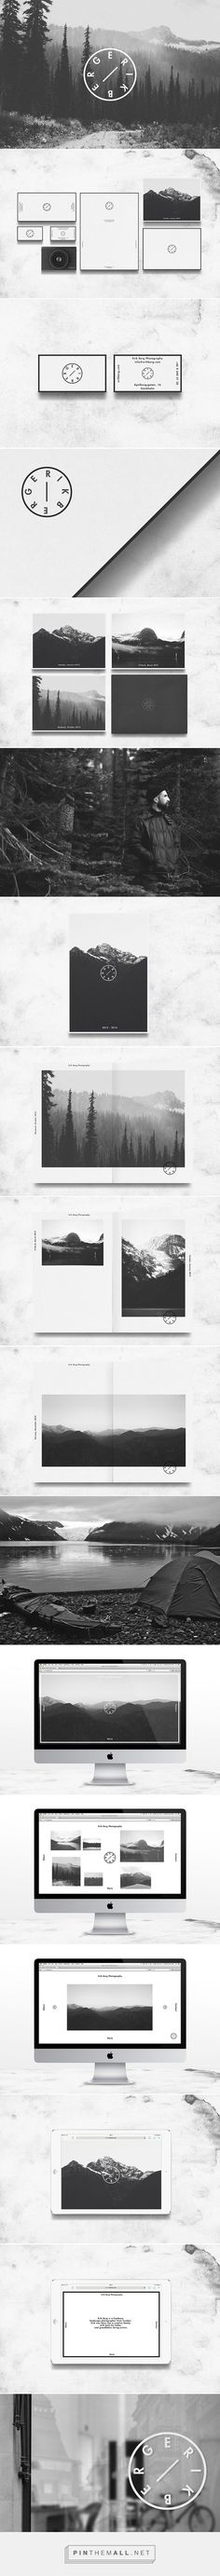 """Design by Whiskey & Mentine:  """"Erik Berg is a Swedish photographer who asked for a clear identity and a format to present his work, from a print portfolio to a digital website. The logo inspired by a mechanical element of the camera used to choose the exposition.""""  #Branding #Logo #WebDesign:"""